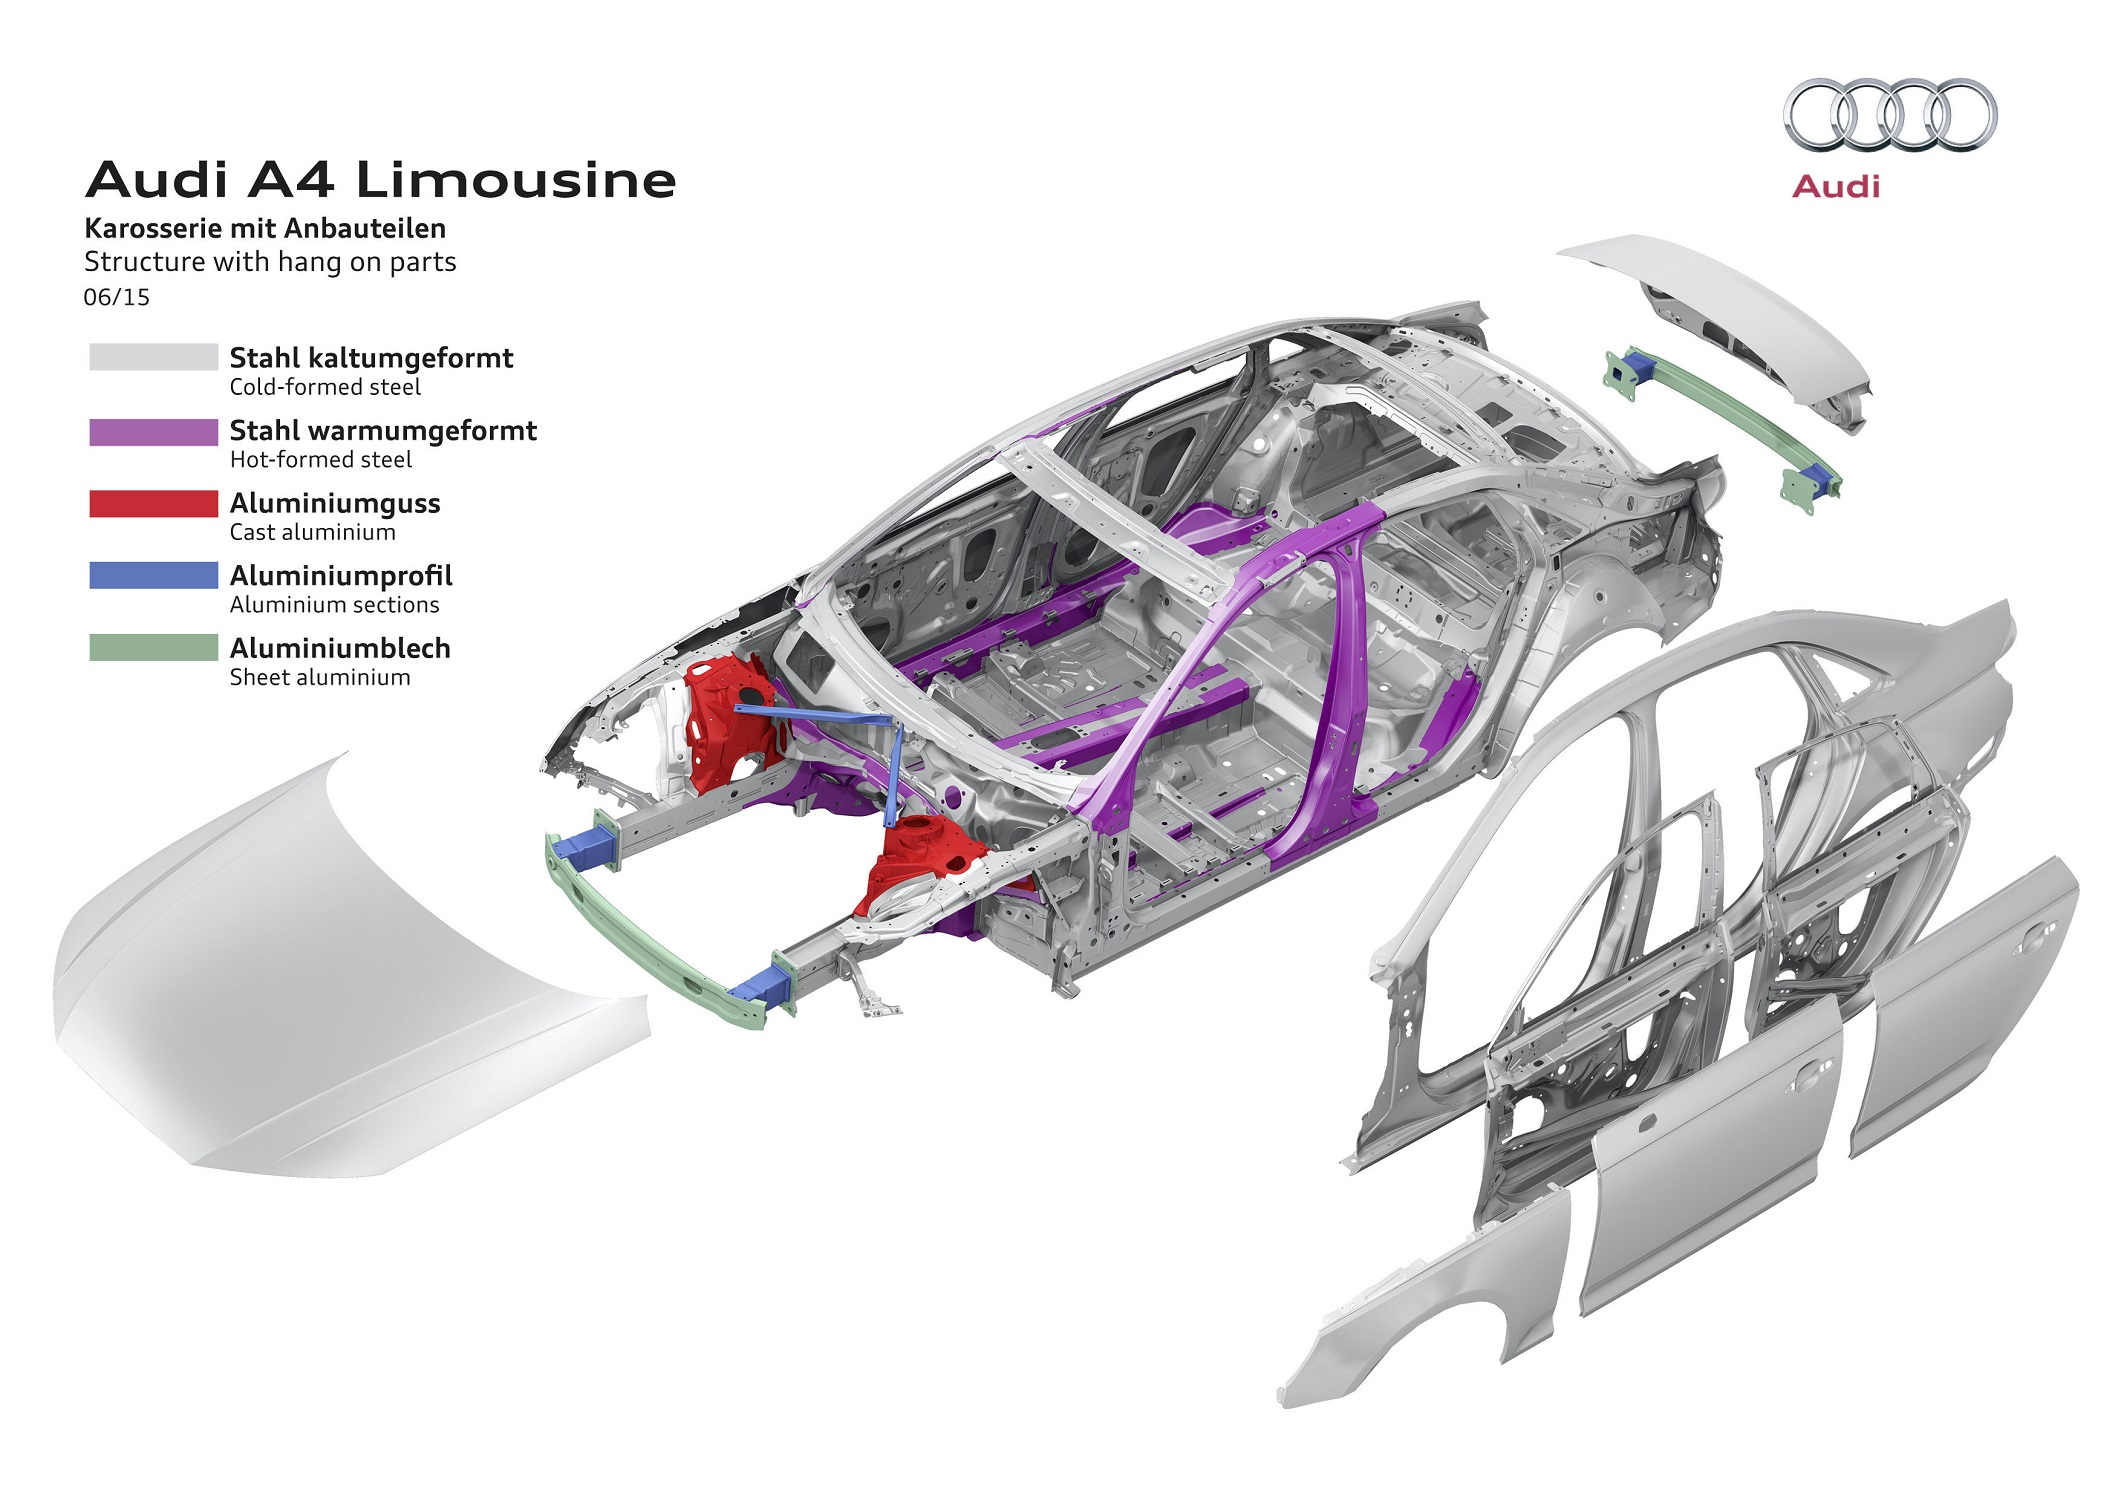 Audi A4 Structure with hang on parts